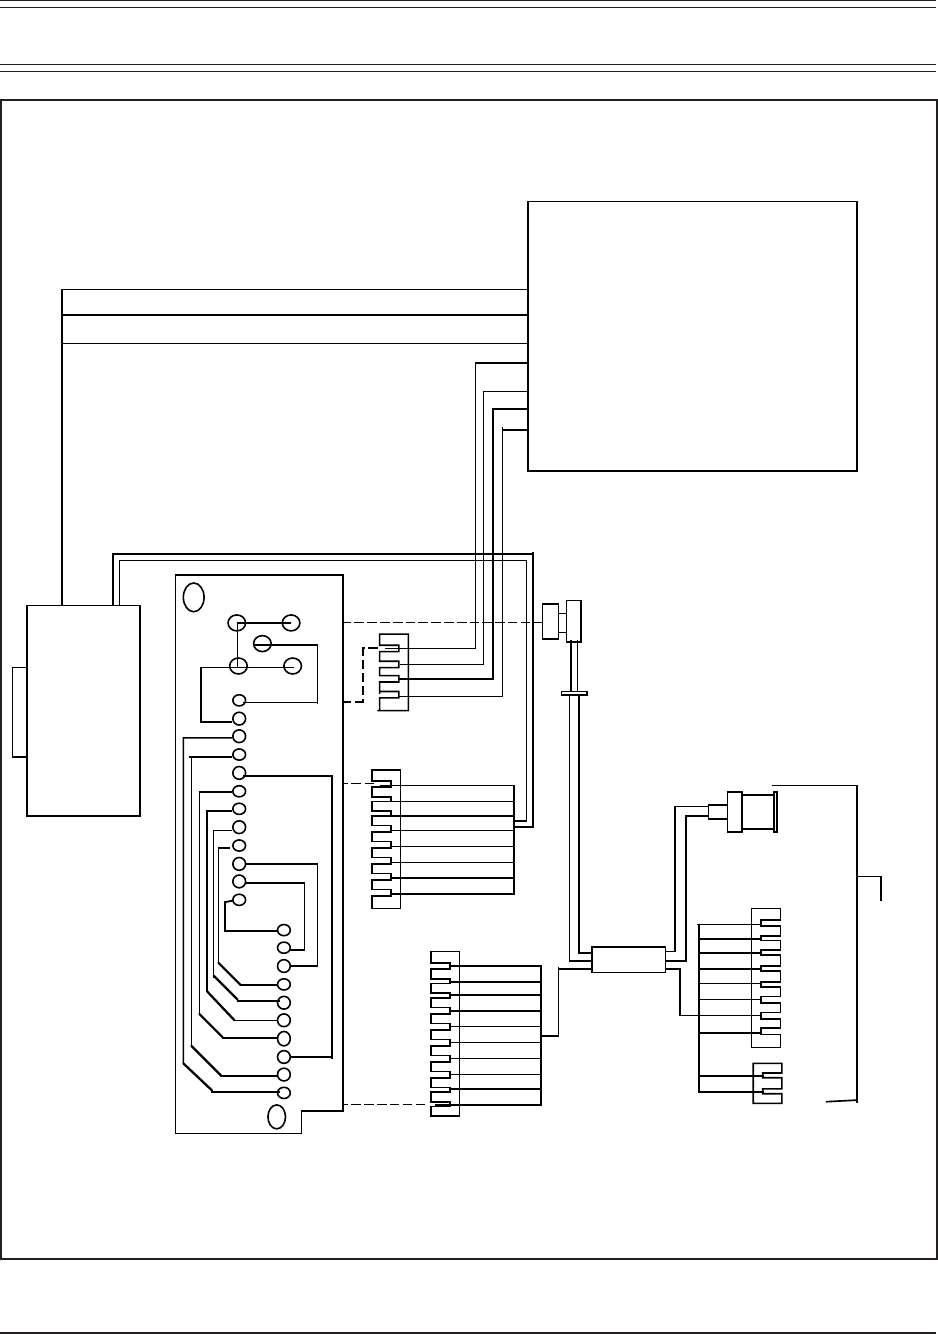 pelco security camera diagram schematic all about repair and pelco security camera diagram schematic 10 pelco manual c1441m d wiring diagram pelco security